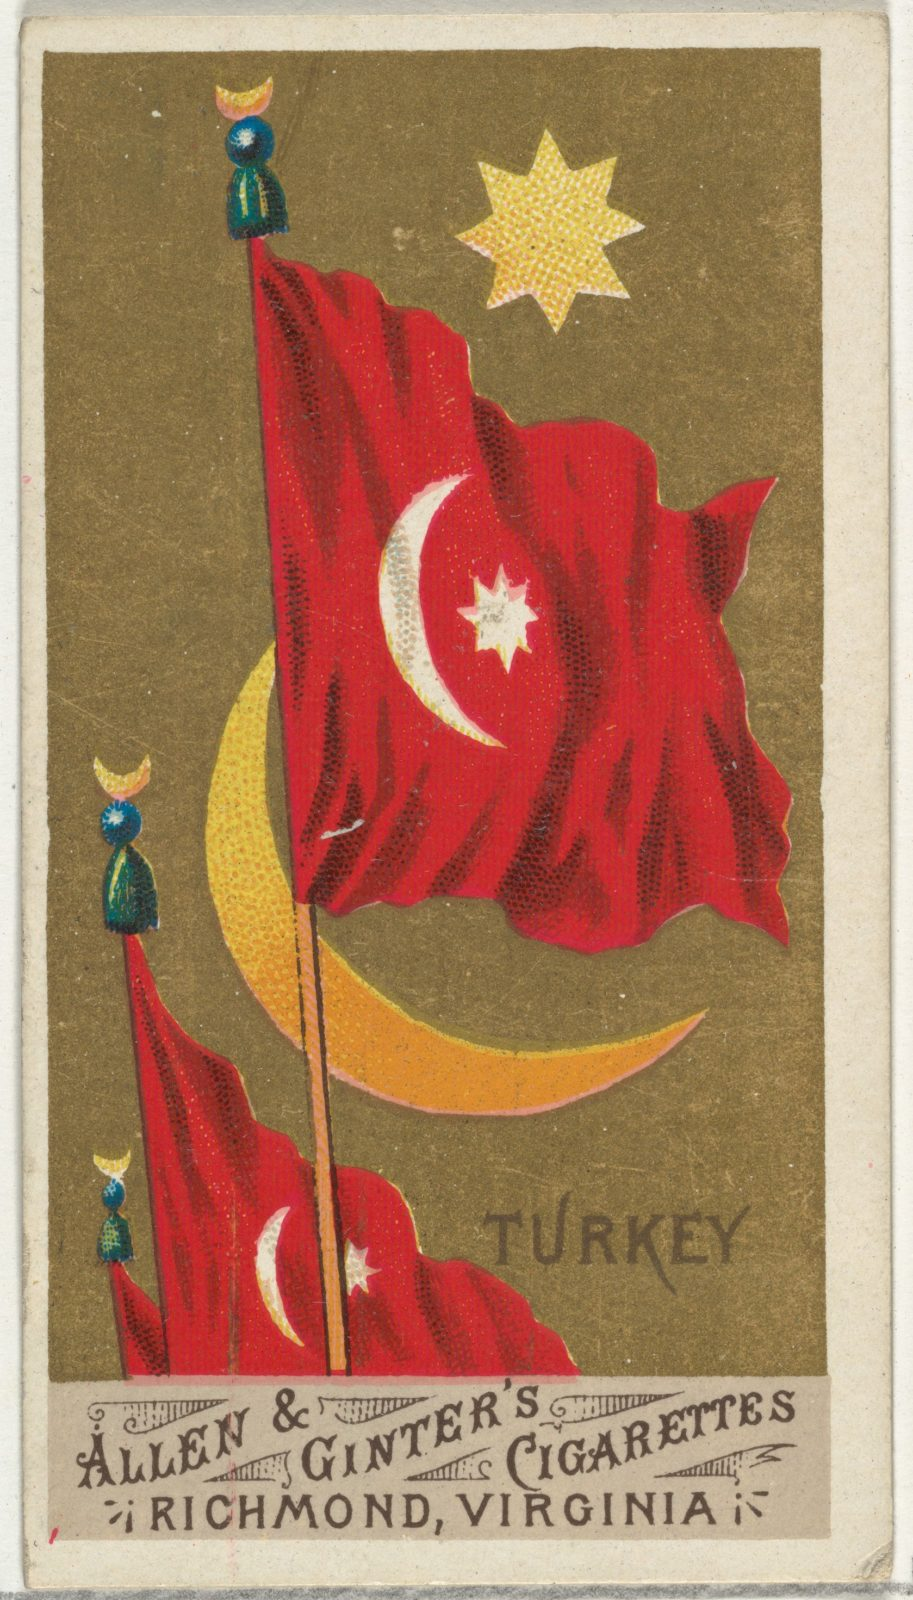 Turkey, from Flags of All Nations, Series 1 (N9) for Allen & Ginter Cigarettes Brands